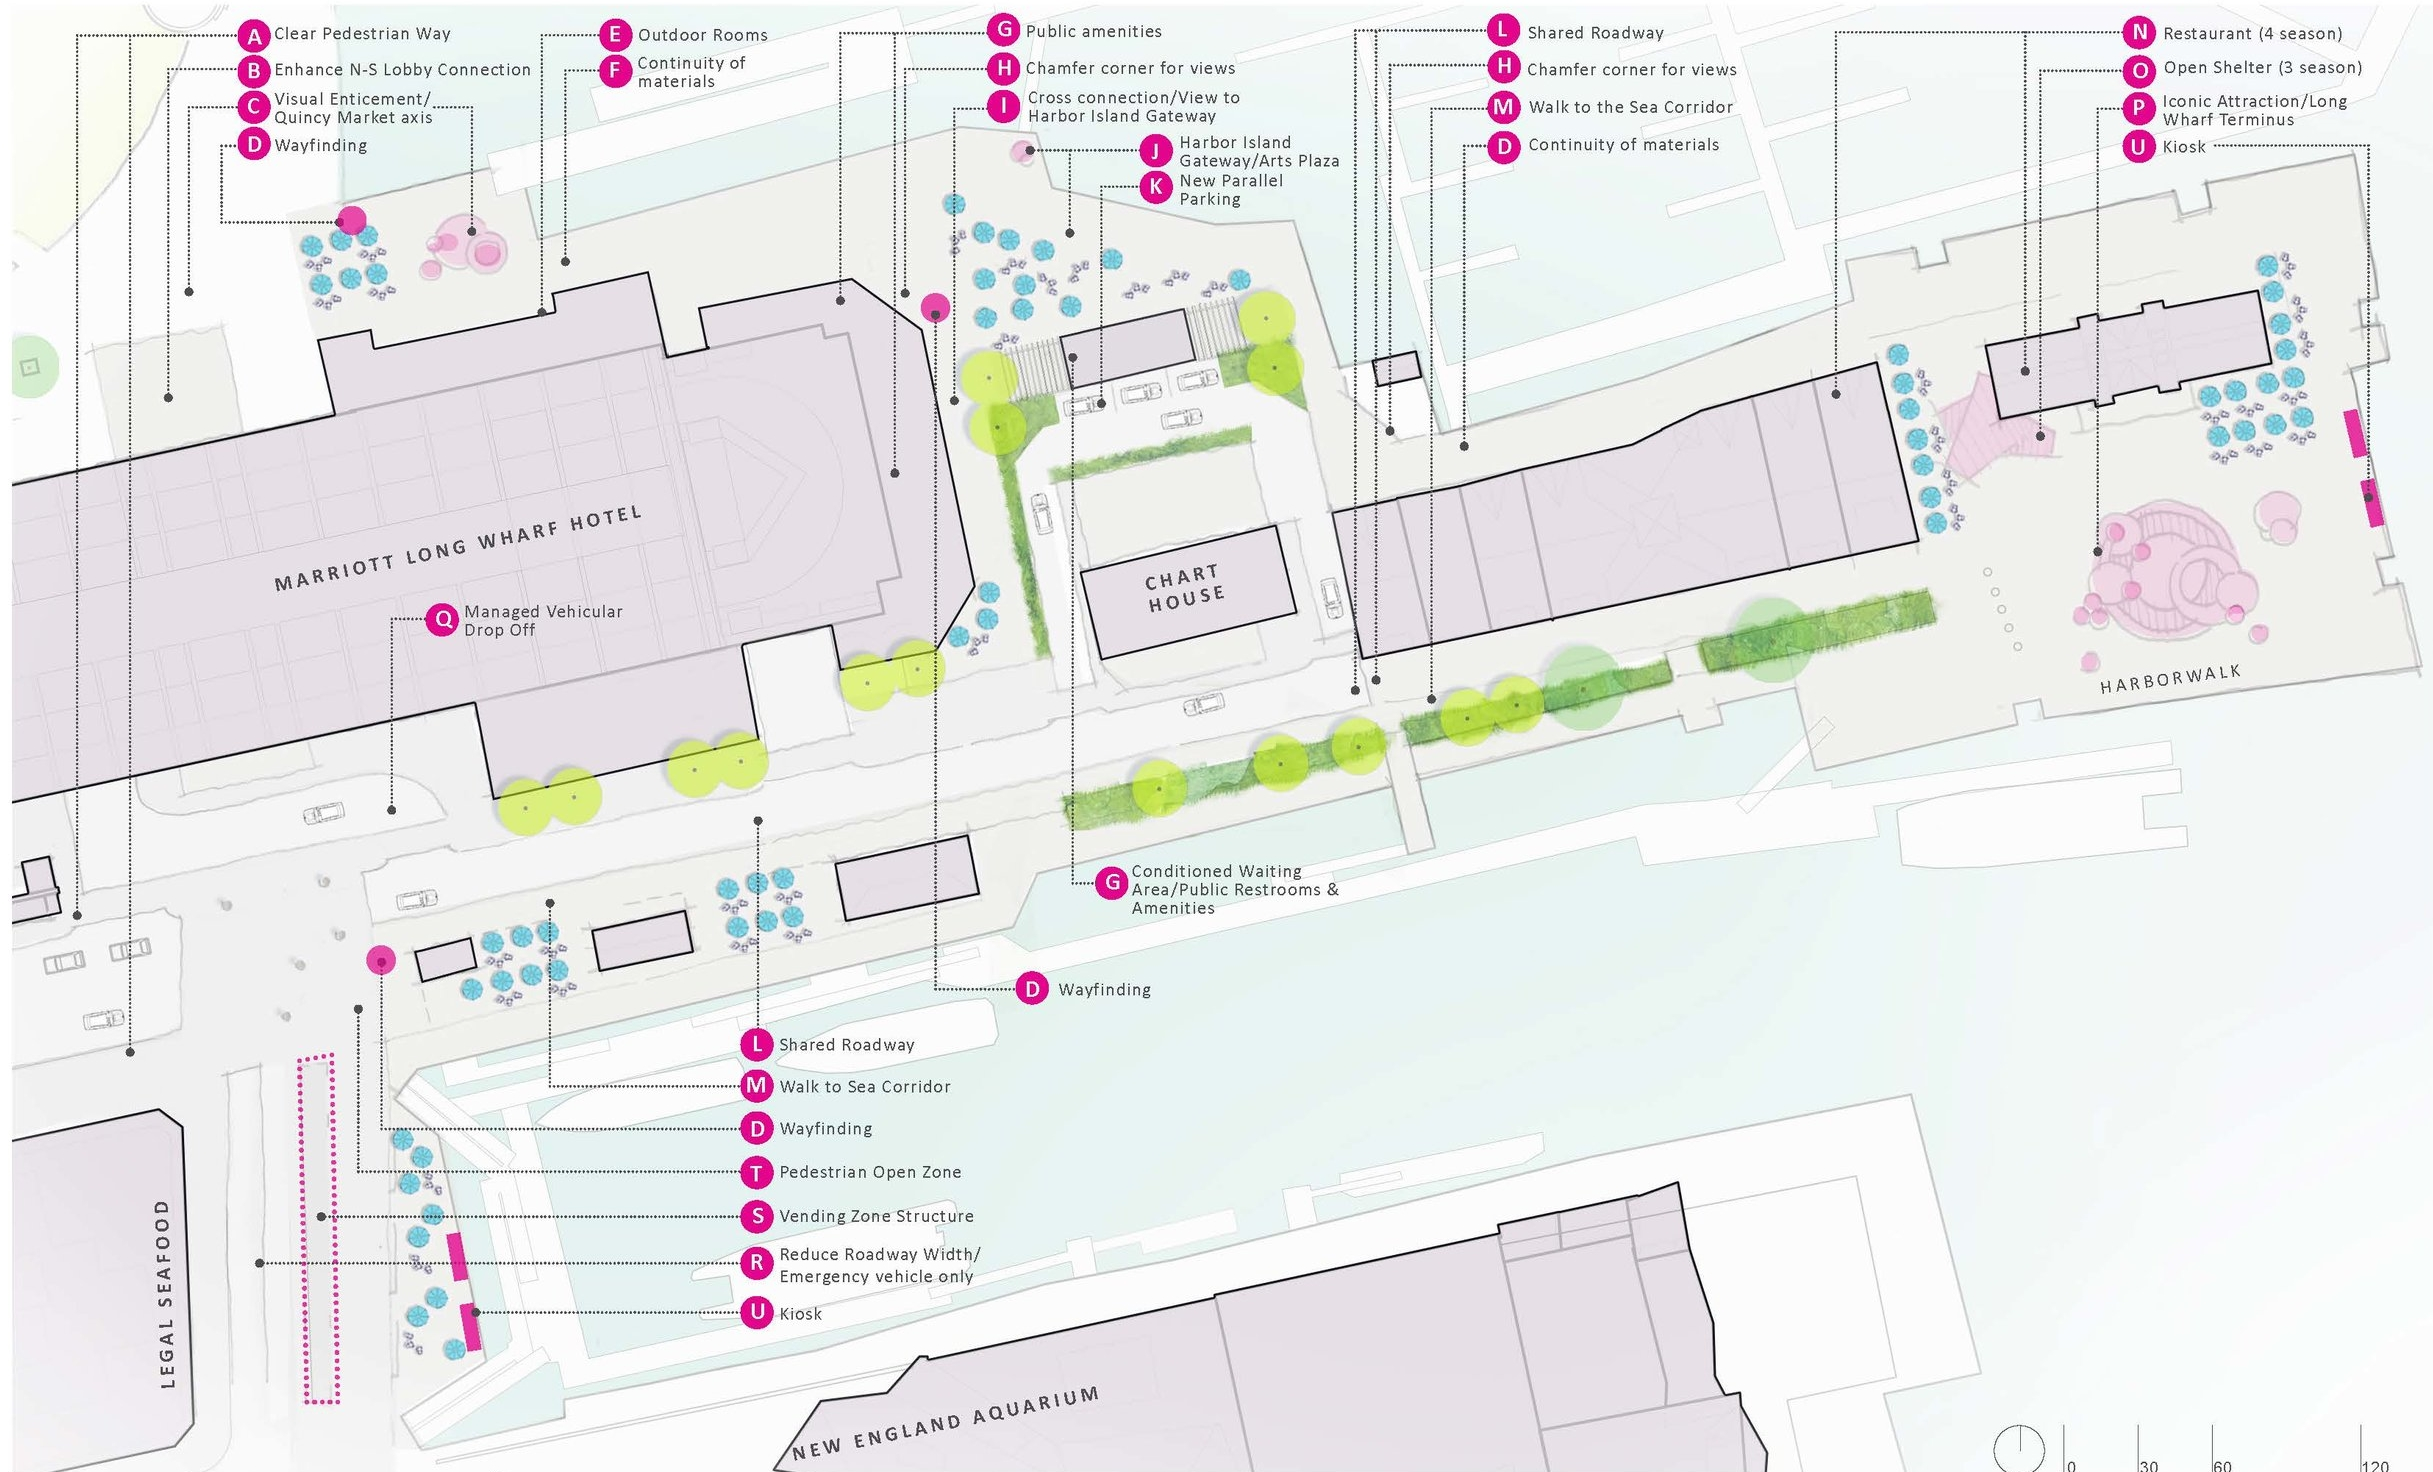 16.09.27 WD Public Realm Vision Draft_Page_06.jpg